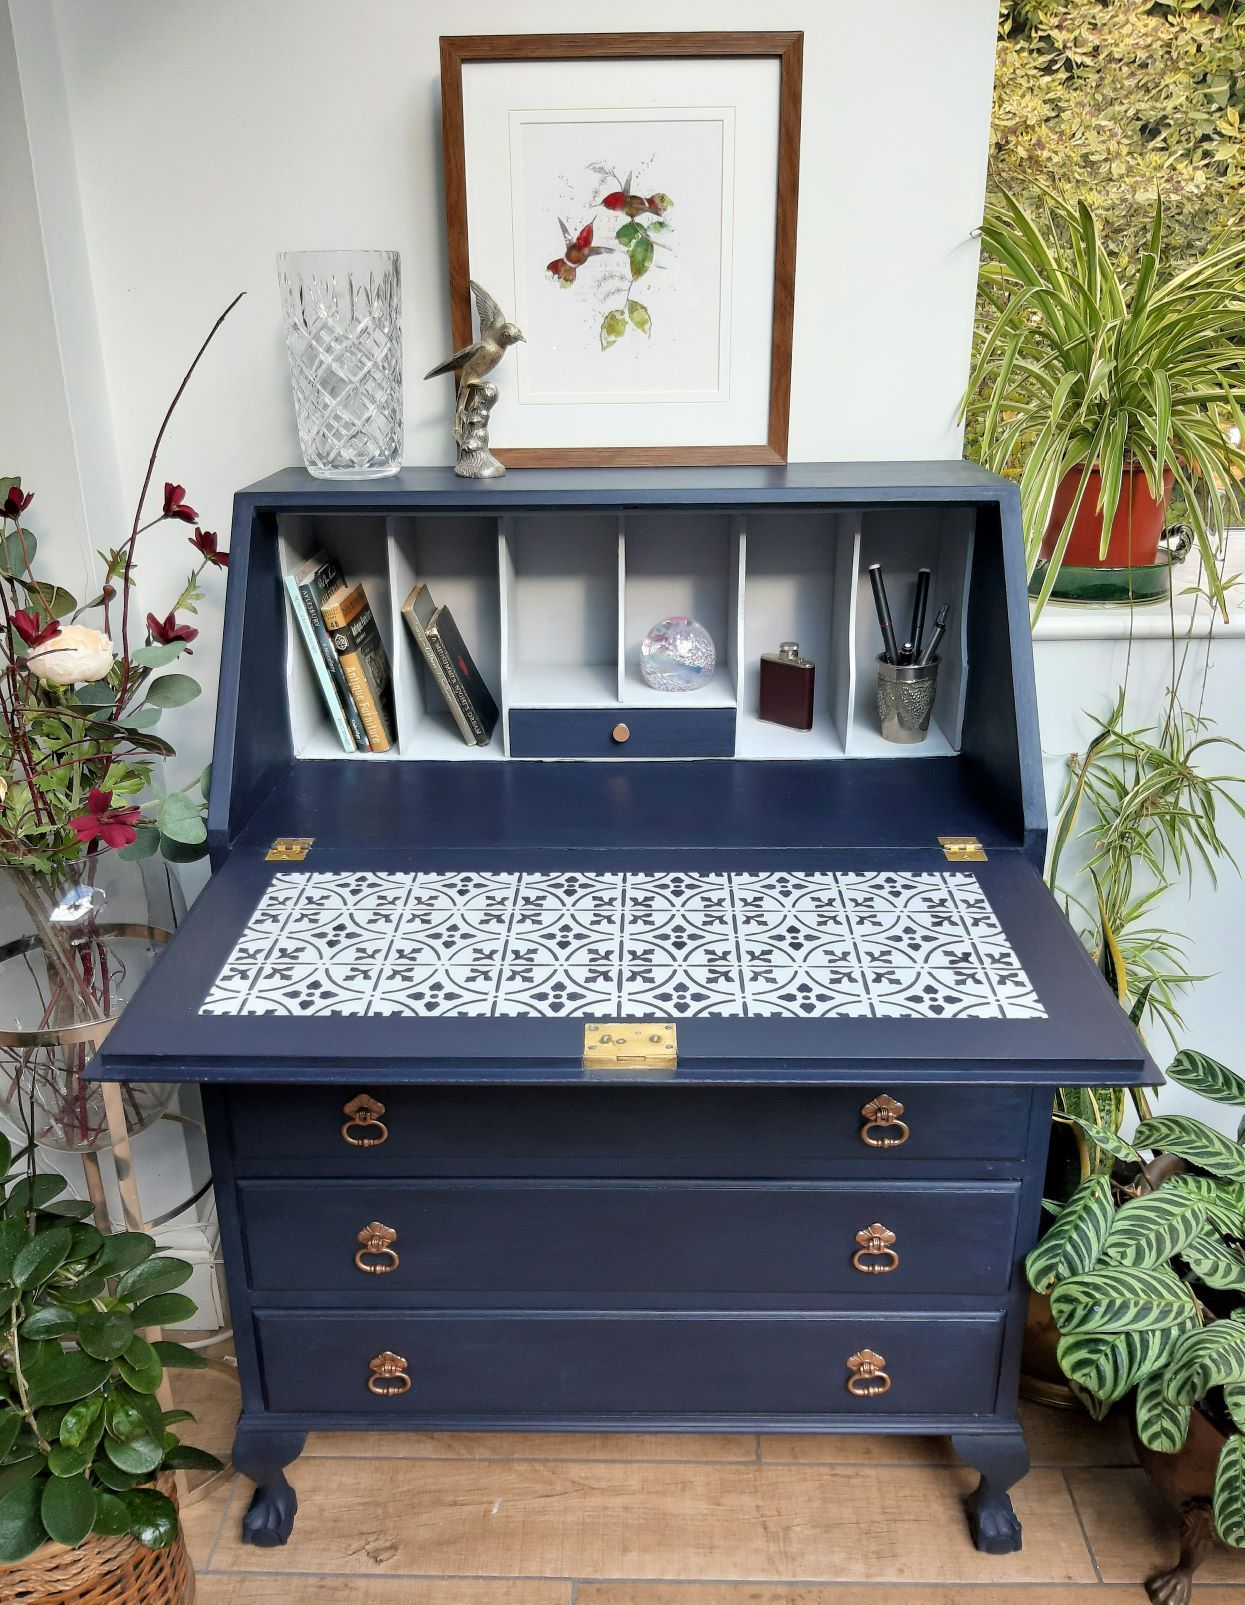 Vintage Bureau Writing Desk Upcycled & Painted in Oxford Navy